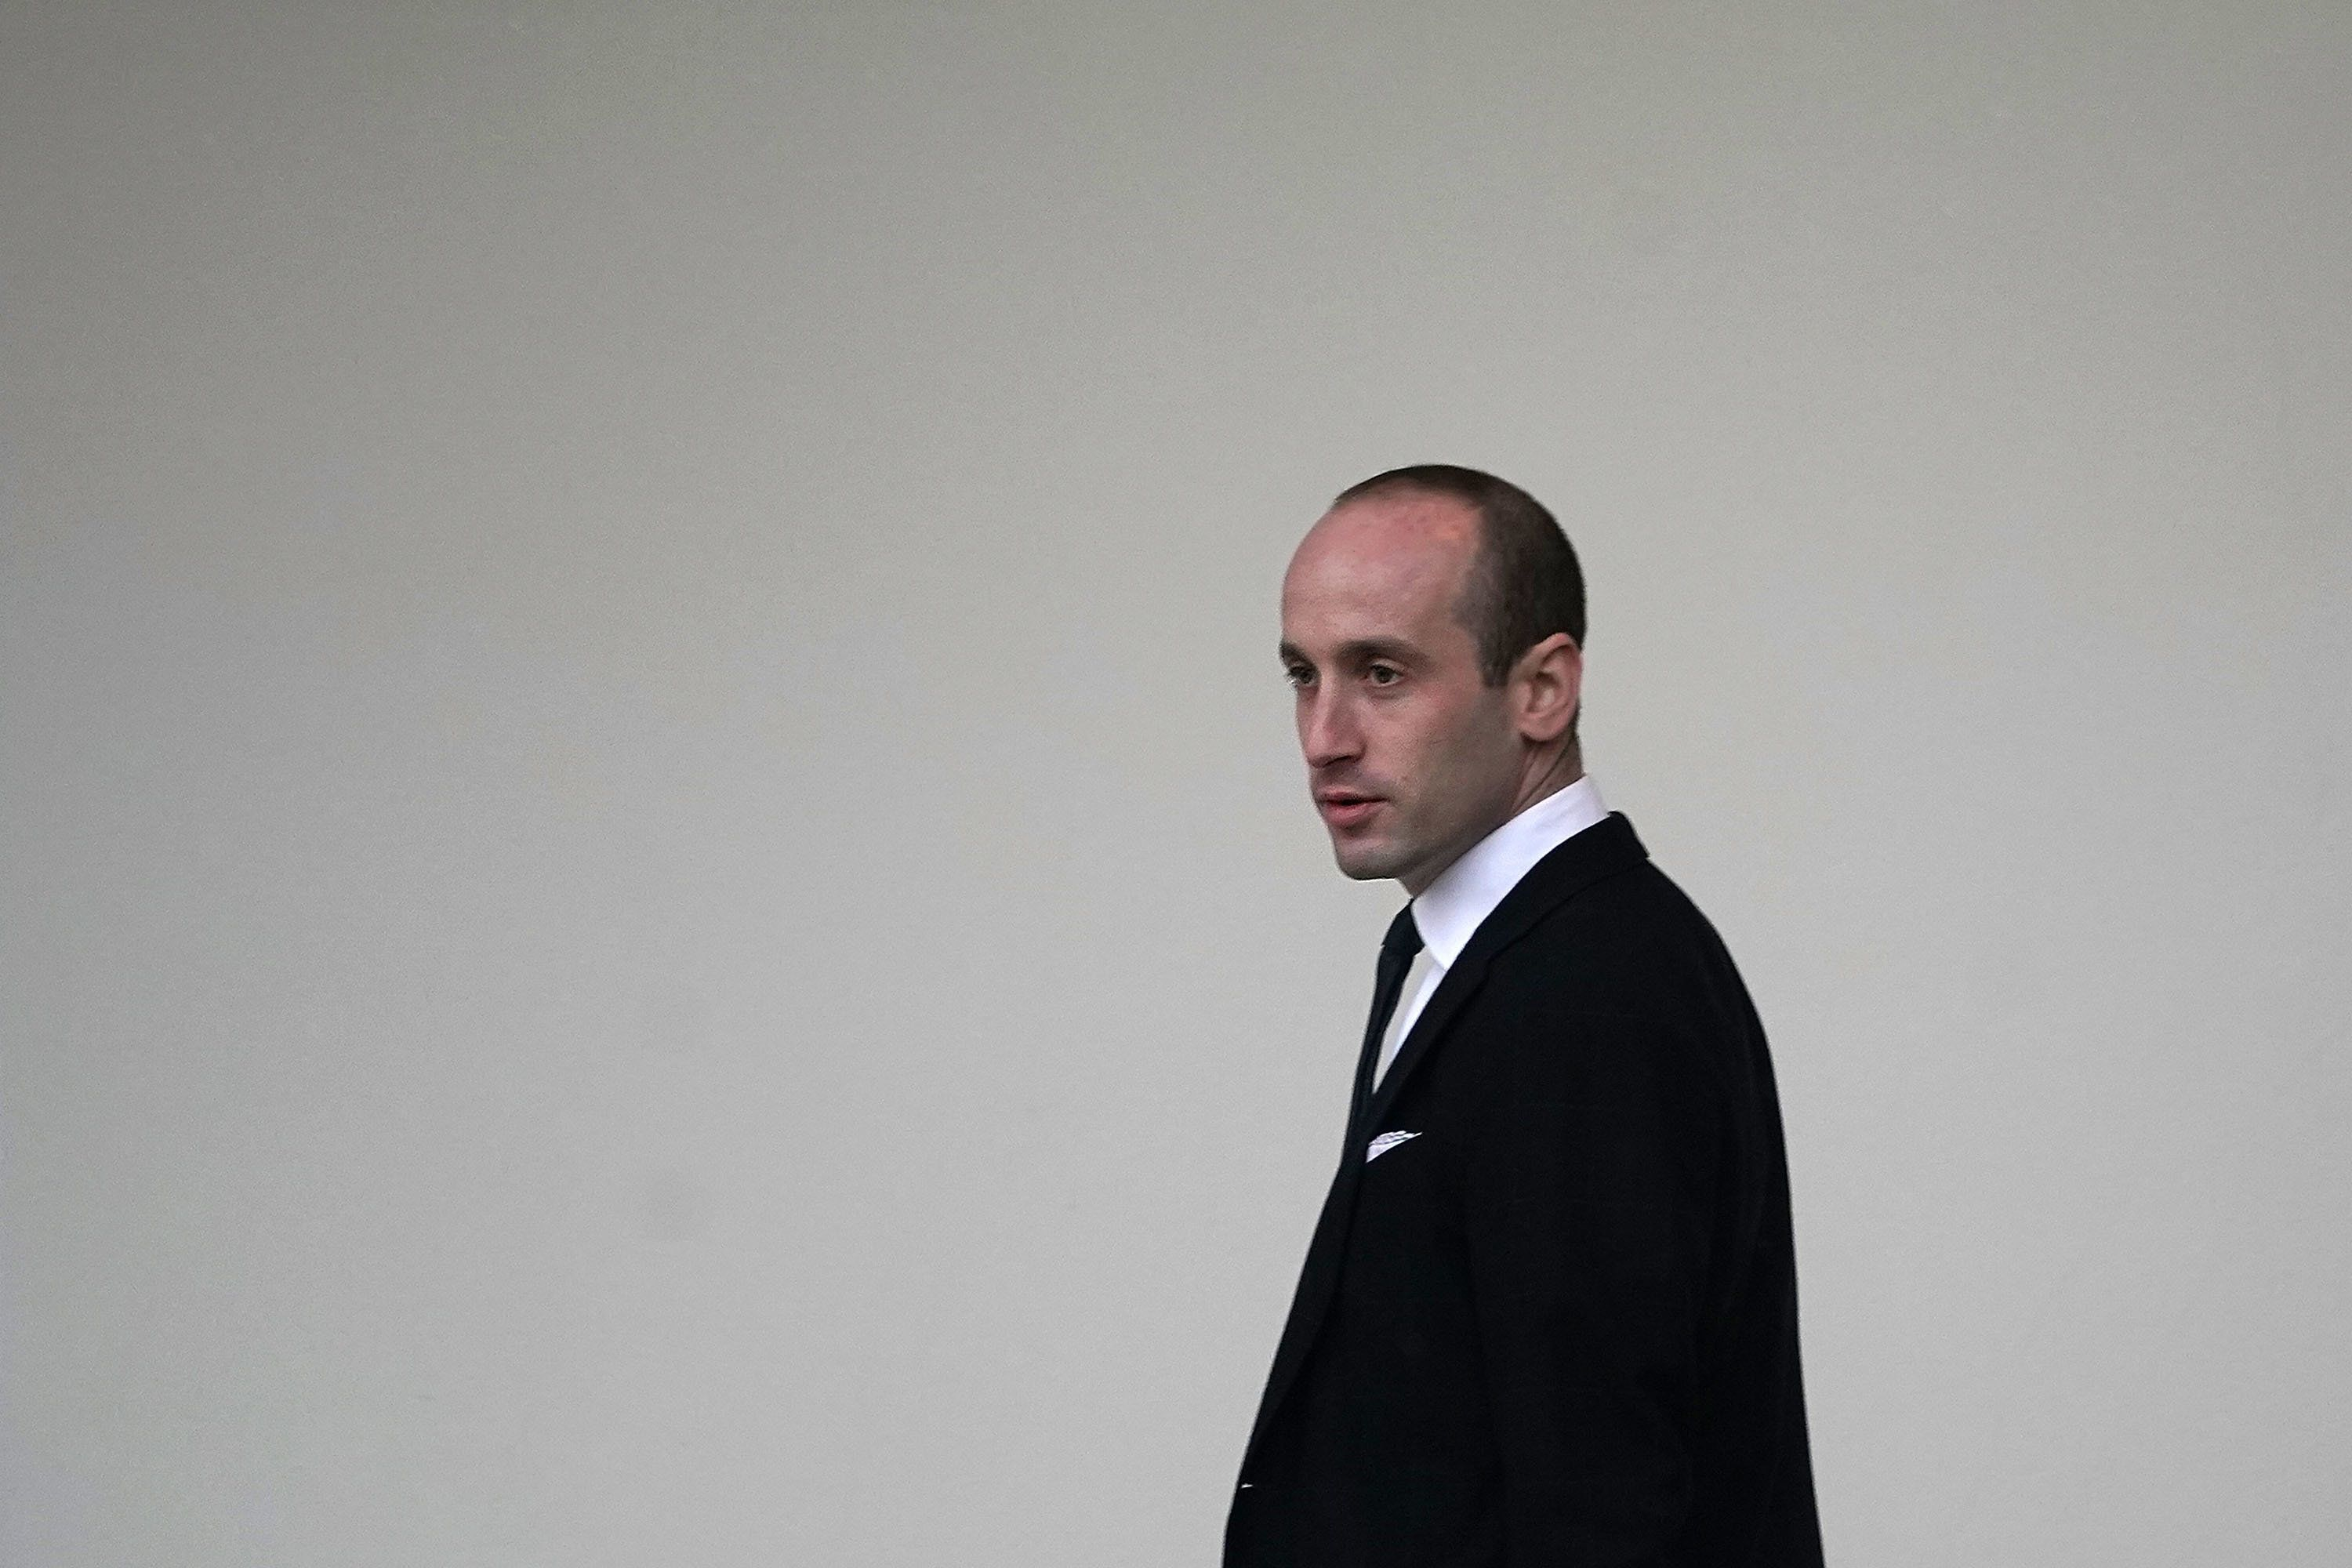 WASHINGTON, DC - DECEMBER 15:  White House Senior Advisor for Policy Stephen Miller after he returned to the White House December 15, 2017 in Washington, DC. President Trump has changed his plan to return to the White House first due to a bad weather call. ItÕs not sure whether he will still travel to Camp David for the weekend.  (Photo by Alex Wong/Getty Images)